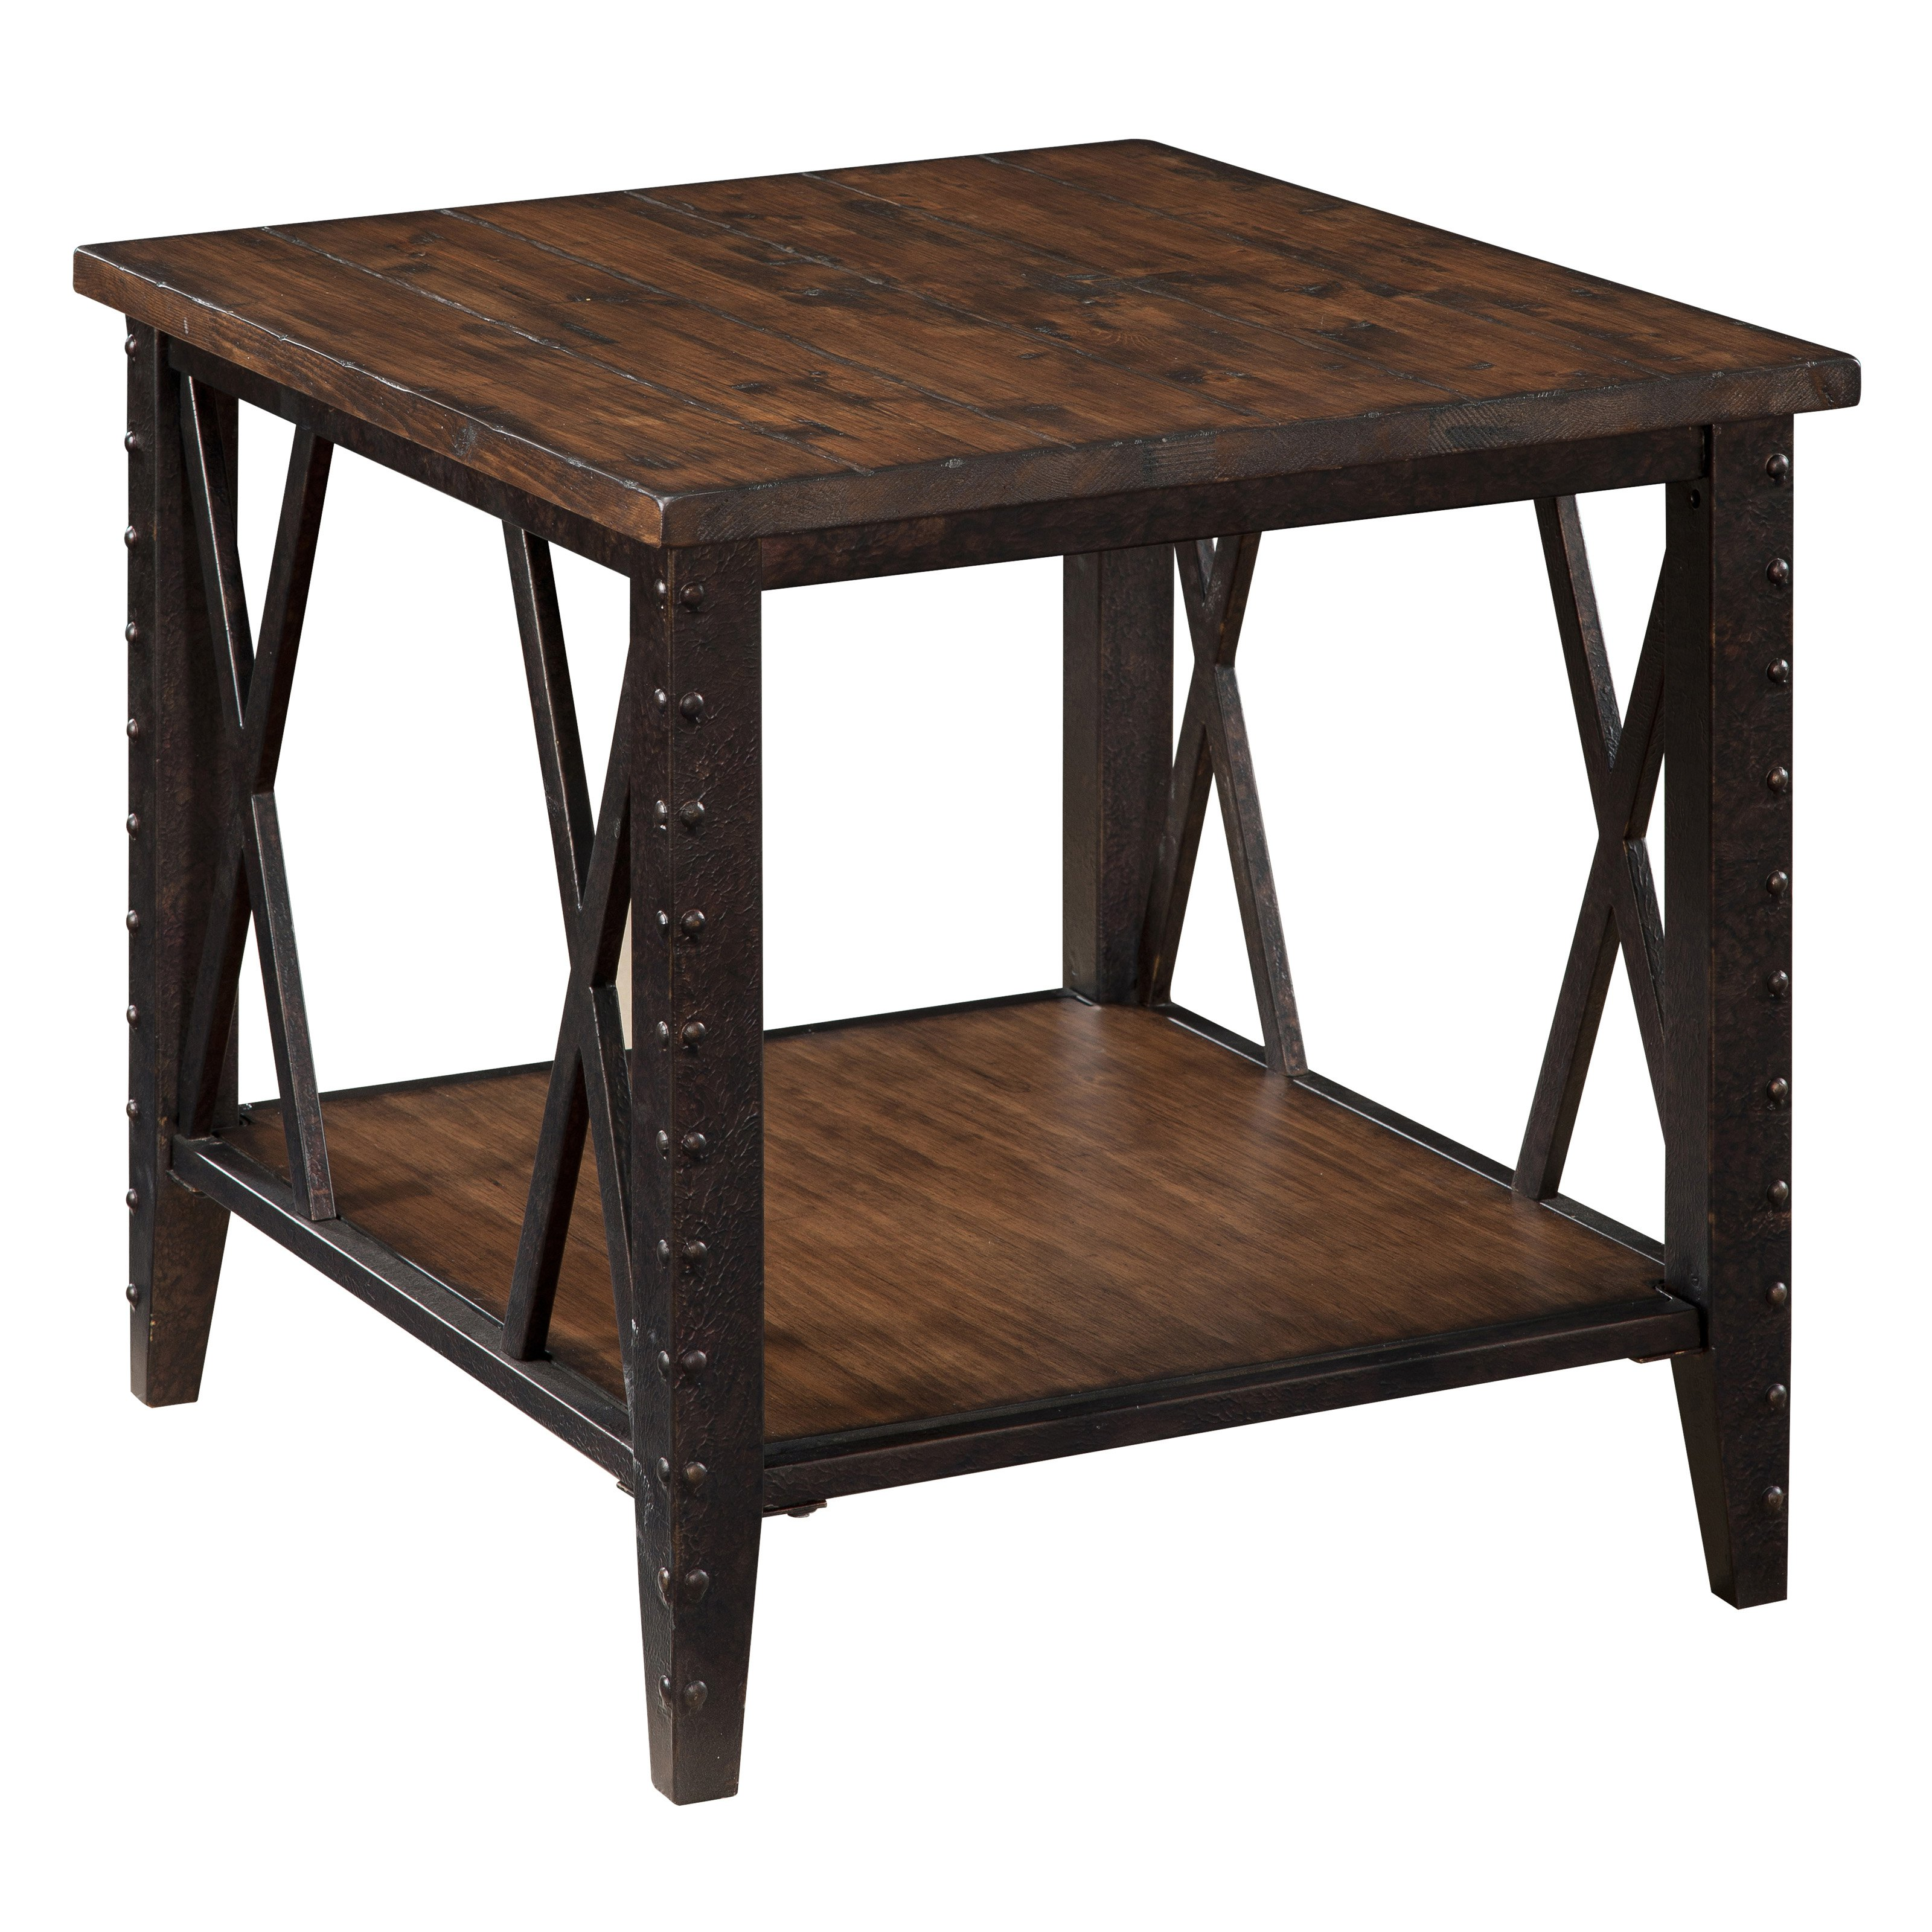 notebook stand the terrific awesome berwyn end table metal and innovative ideas wood with top astonishing design magnussen fleming rectangle rustic pine brown threshold yellow